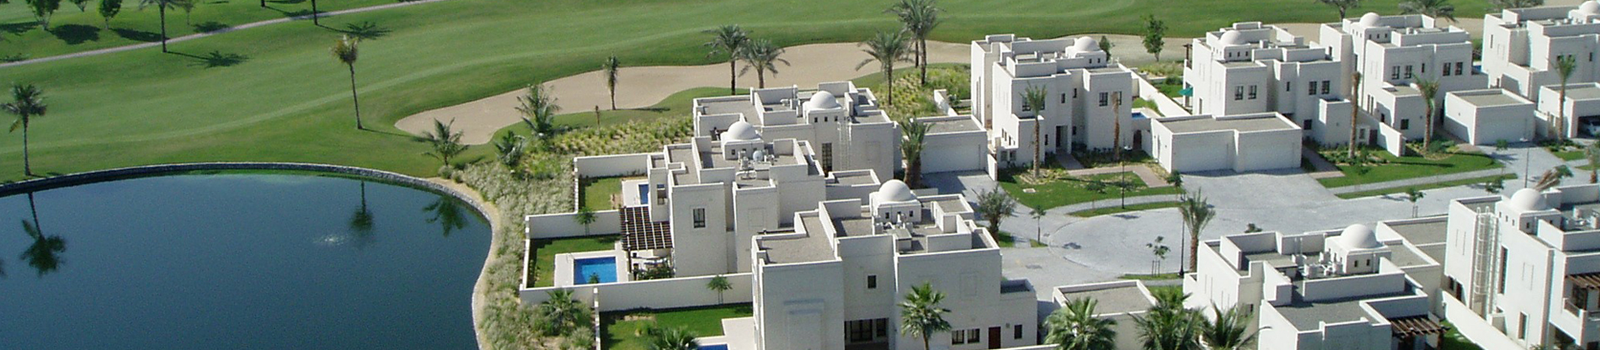 <strong>Our service is our key differentiator </strong><br/><br/><span>Villas at Dubai Creek Golf & Yacht Club - Dubai</span>